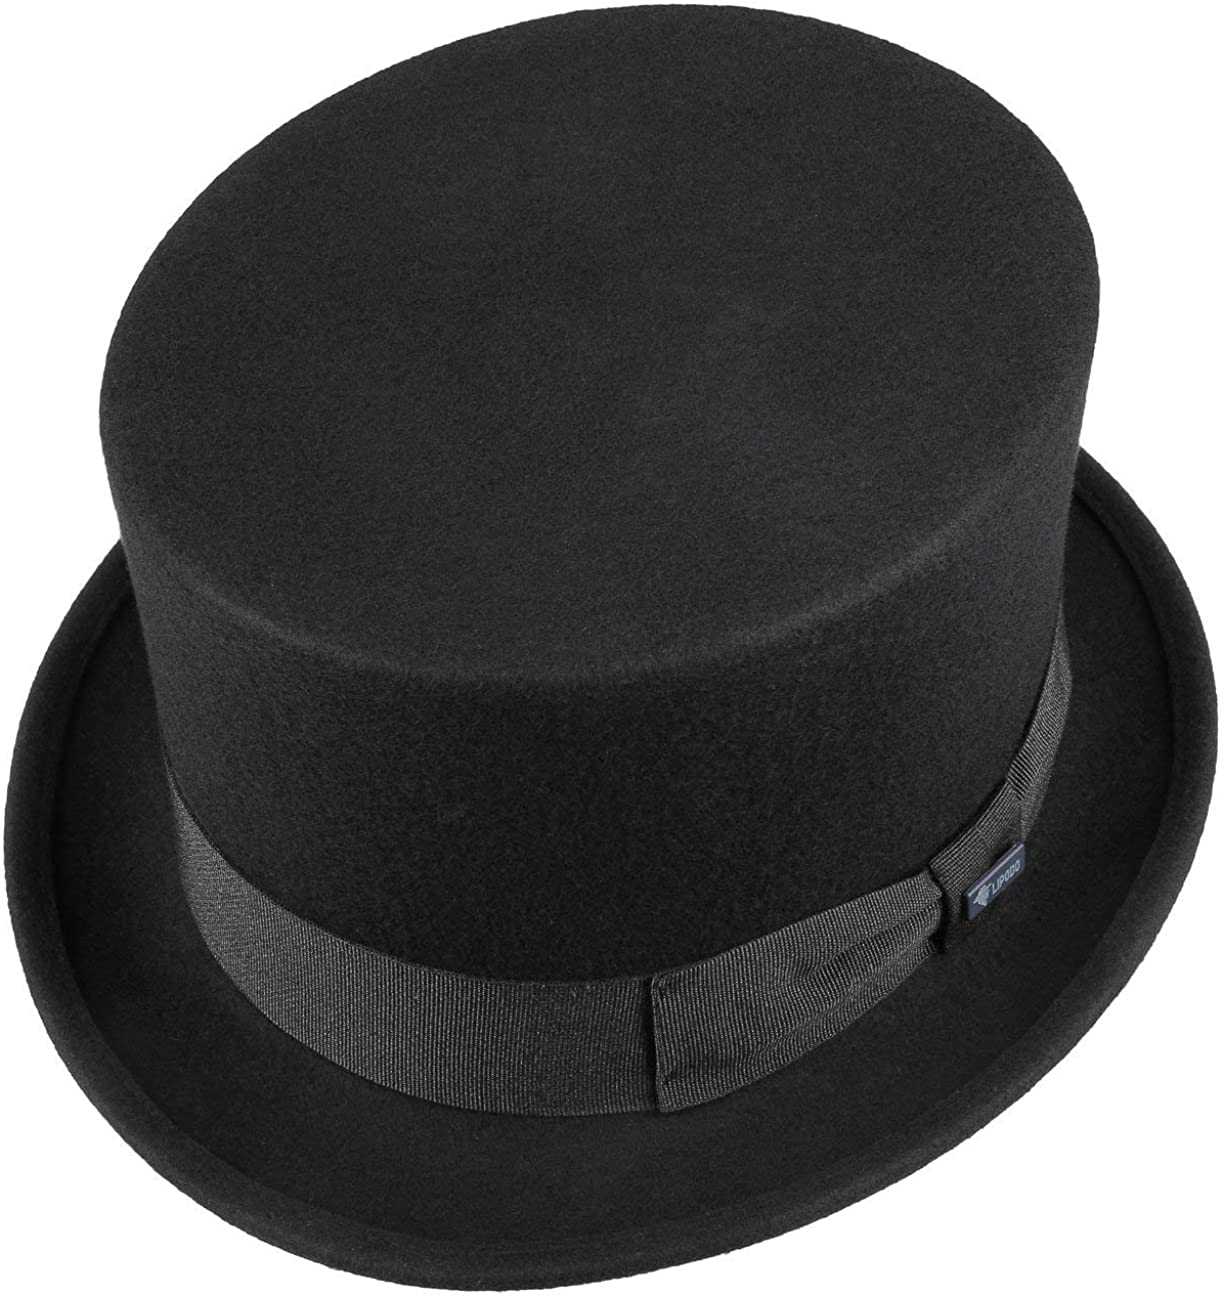 Wool Felt hat Size S M L XL Made in Italy Lipodo Ladies and Men Black Felt top hat - Wedding hat with Grosgrain Ribbon Summer//Winter hat Approx. 54-61 cm